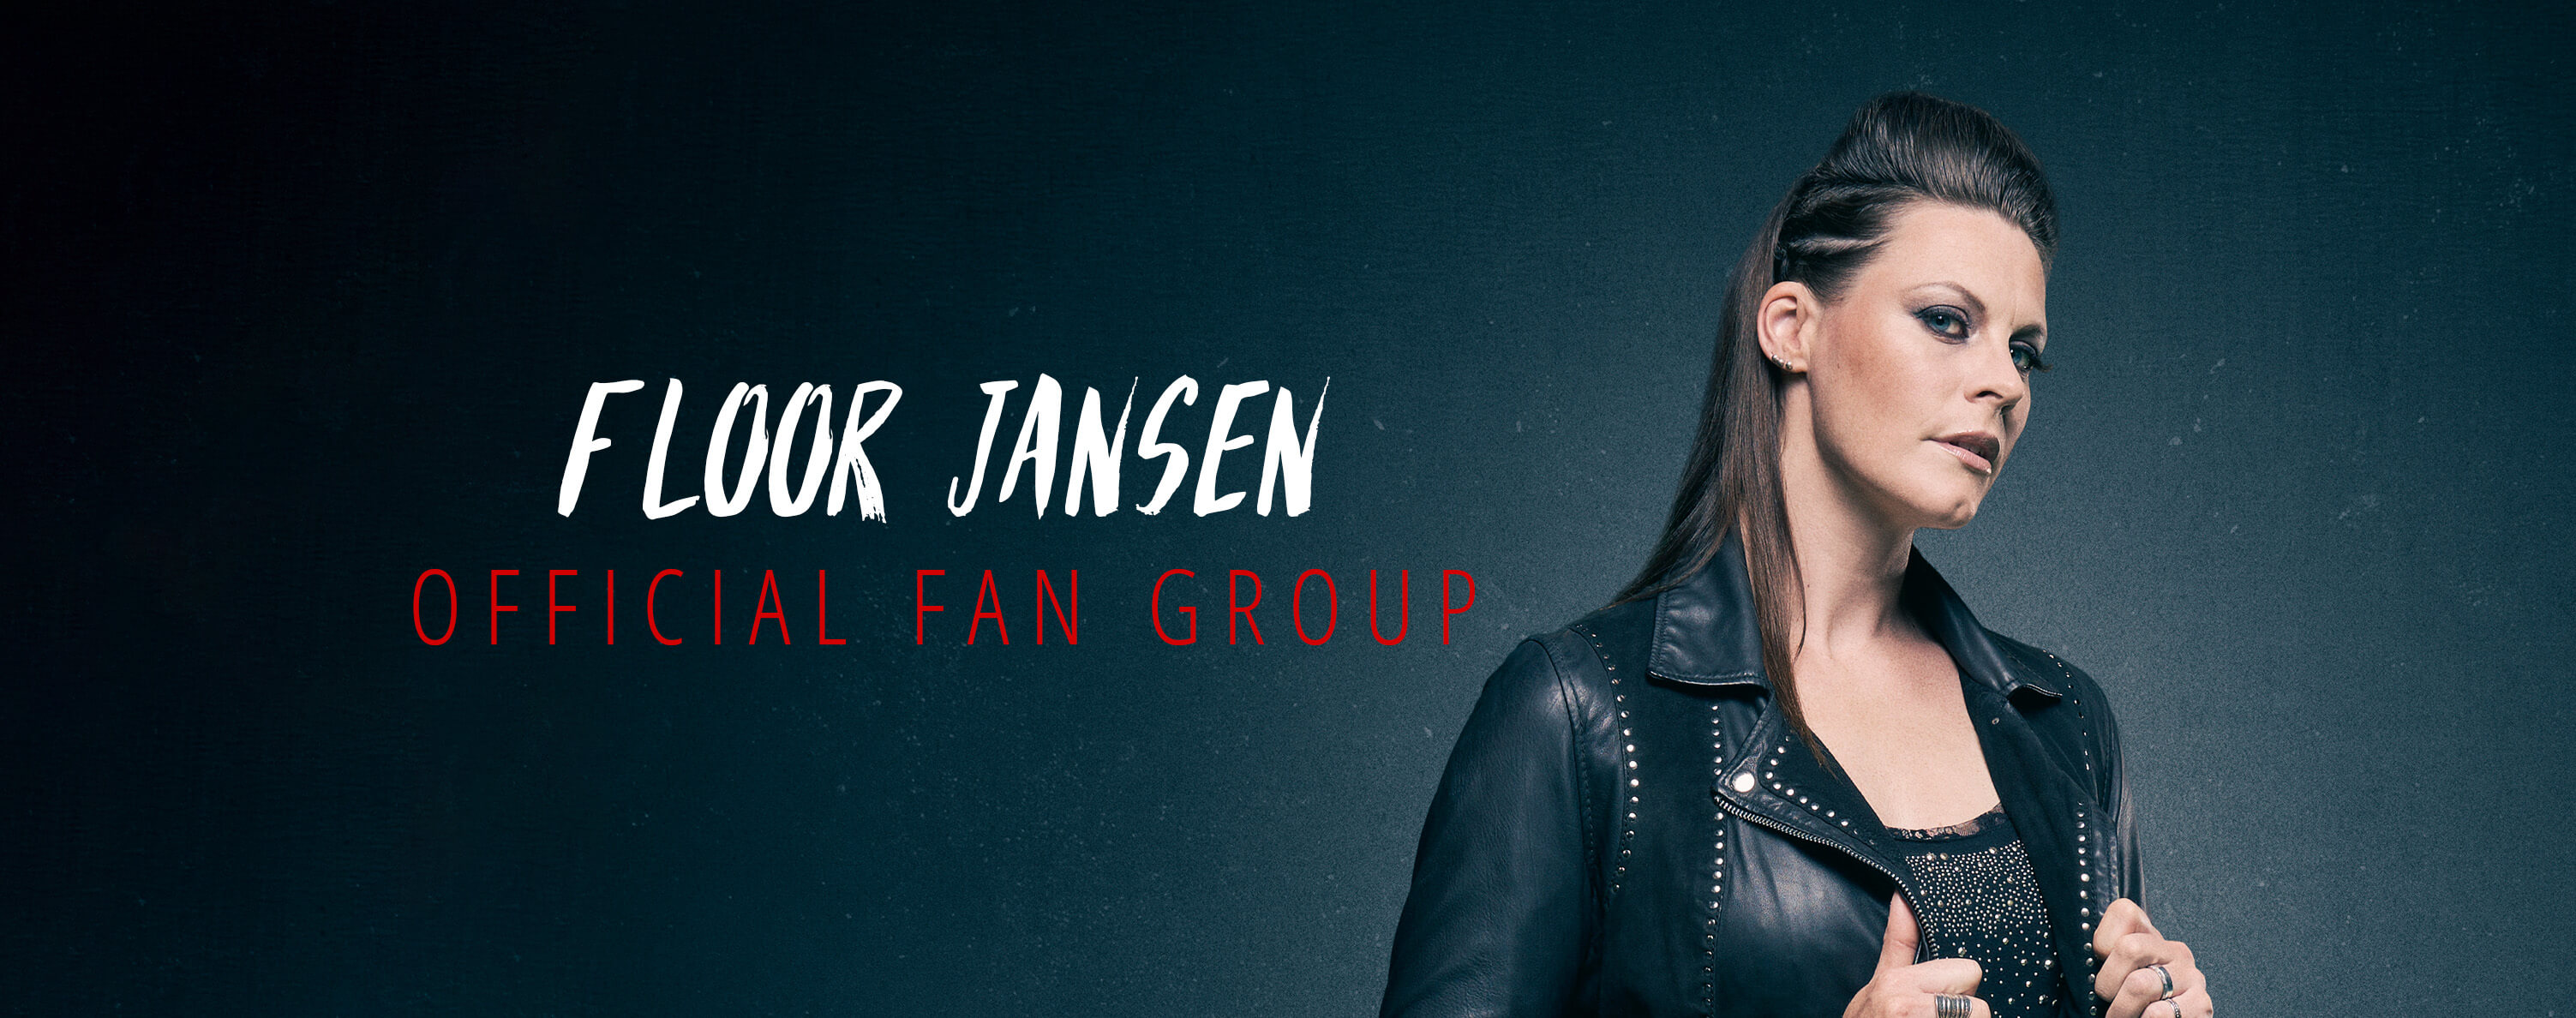 My official fan group & newsletter!